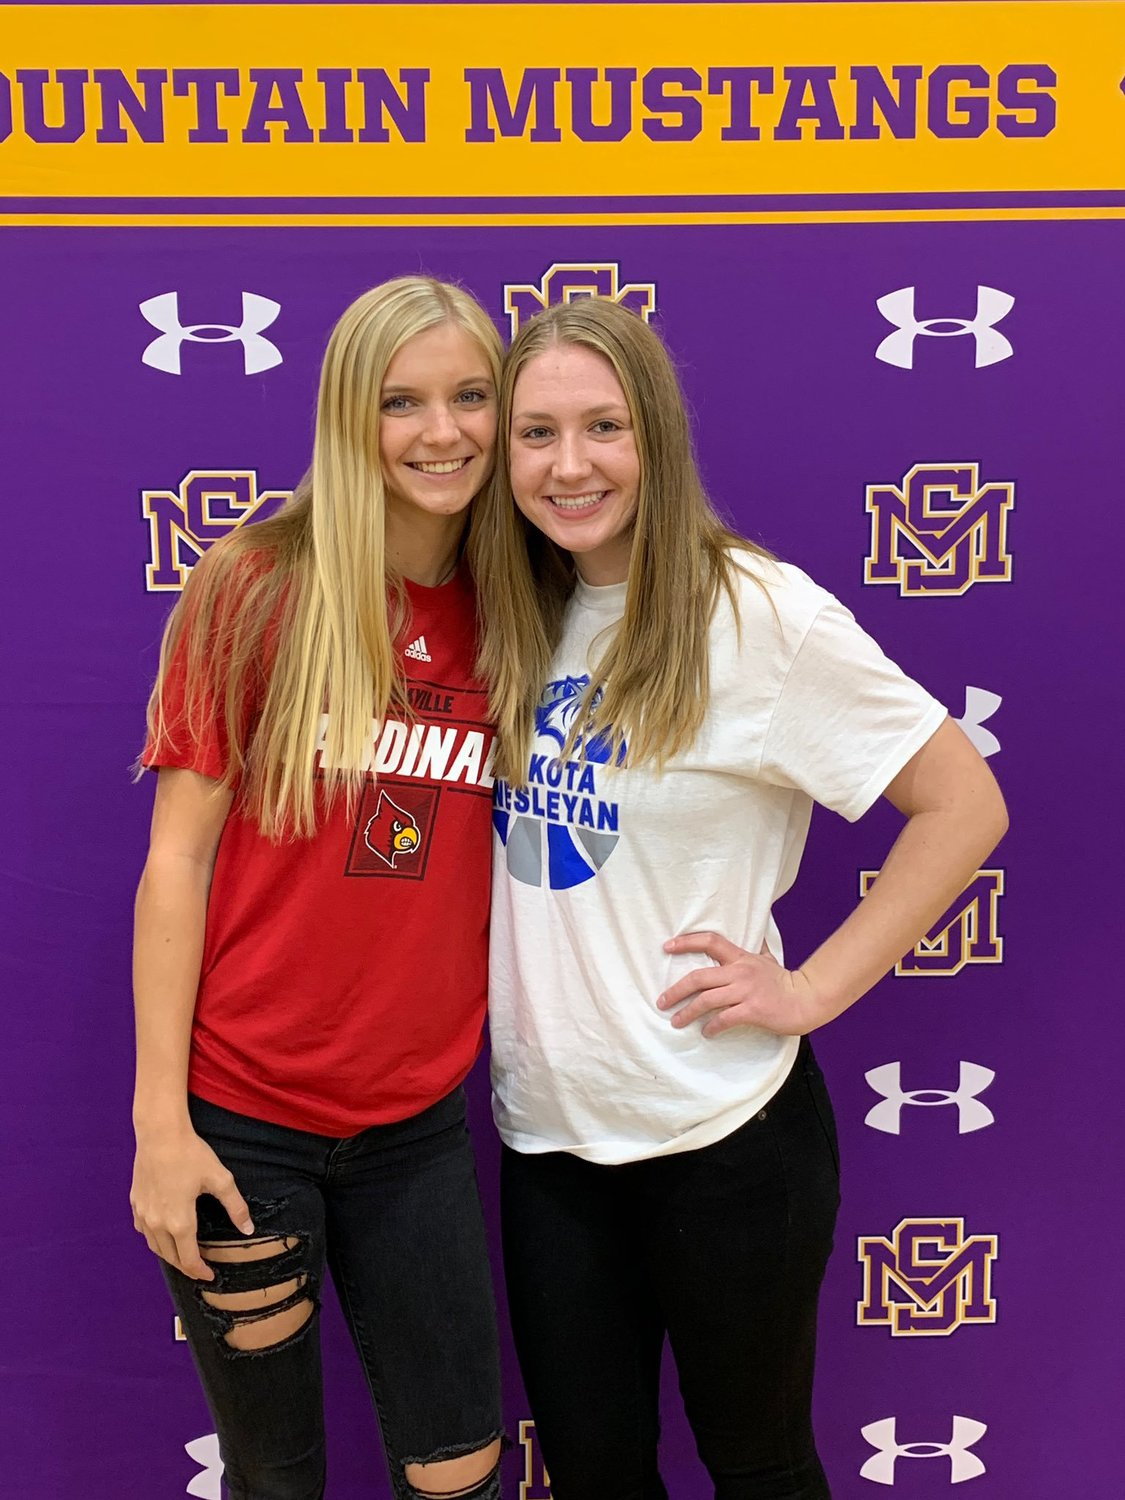 Sunrise Mountain seniors Sydney Bickel, Left, and Teryn Demaree signed to continue their athletic careers in college during a ceremony Nov. 12 at the Peoria school. Bickel signed to play softball at the University of Louisville while Demaree will play basketball at Dakota Wesleyan University.